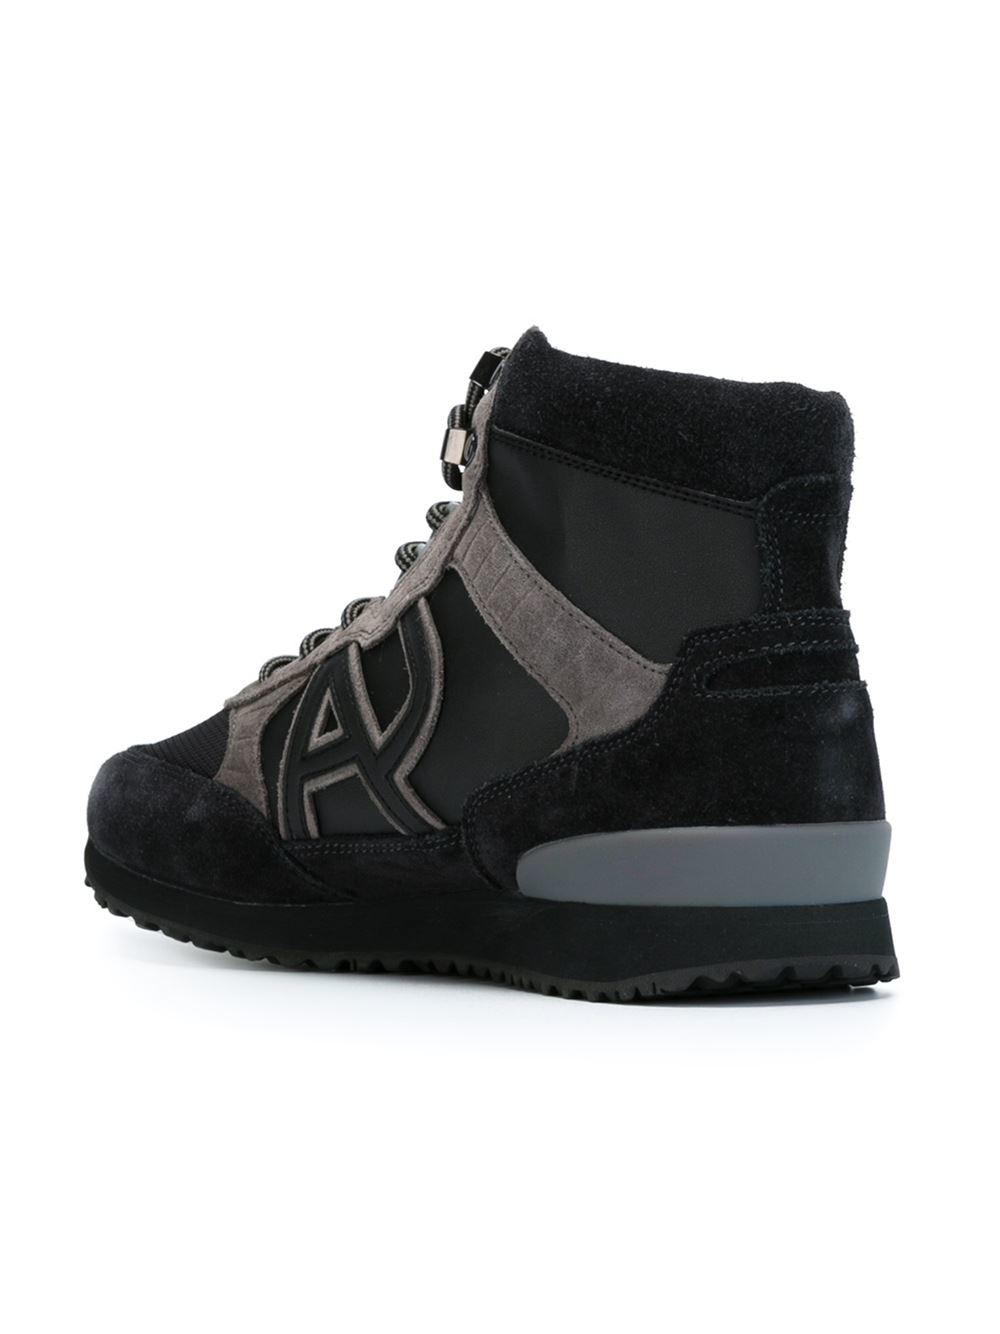 armani jeans high top sneaker with logo in gray for men lyst. Black Bedroom Furniture Sets. Home Design Ideas